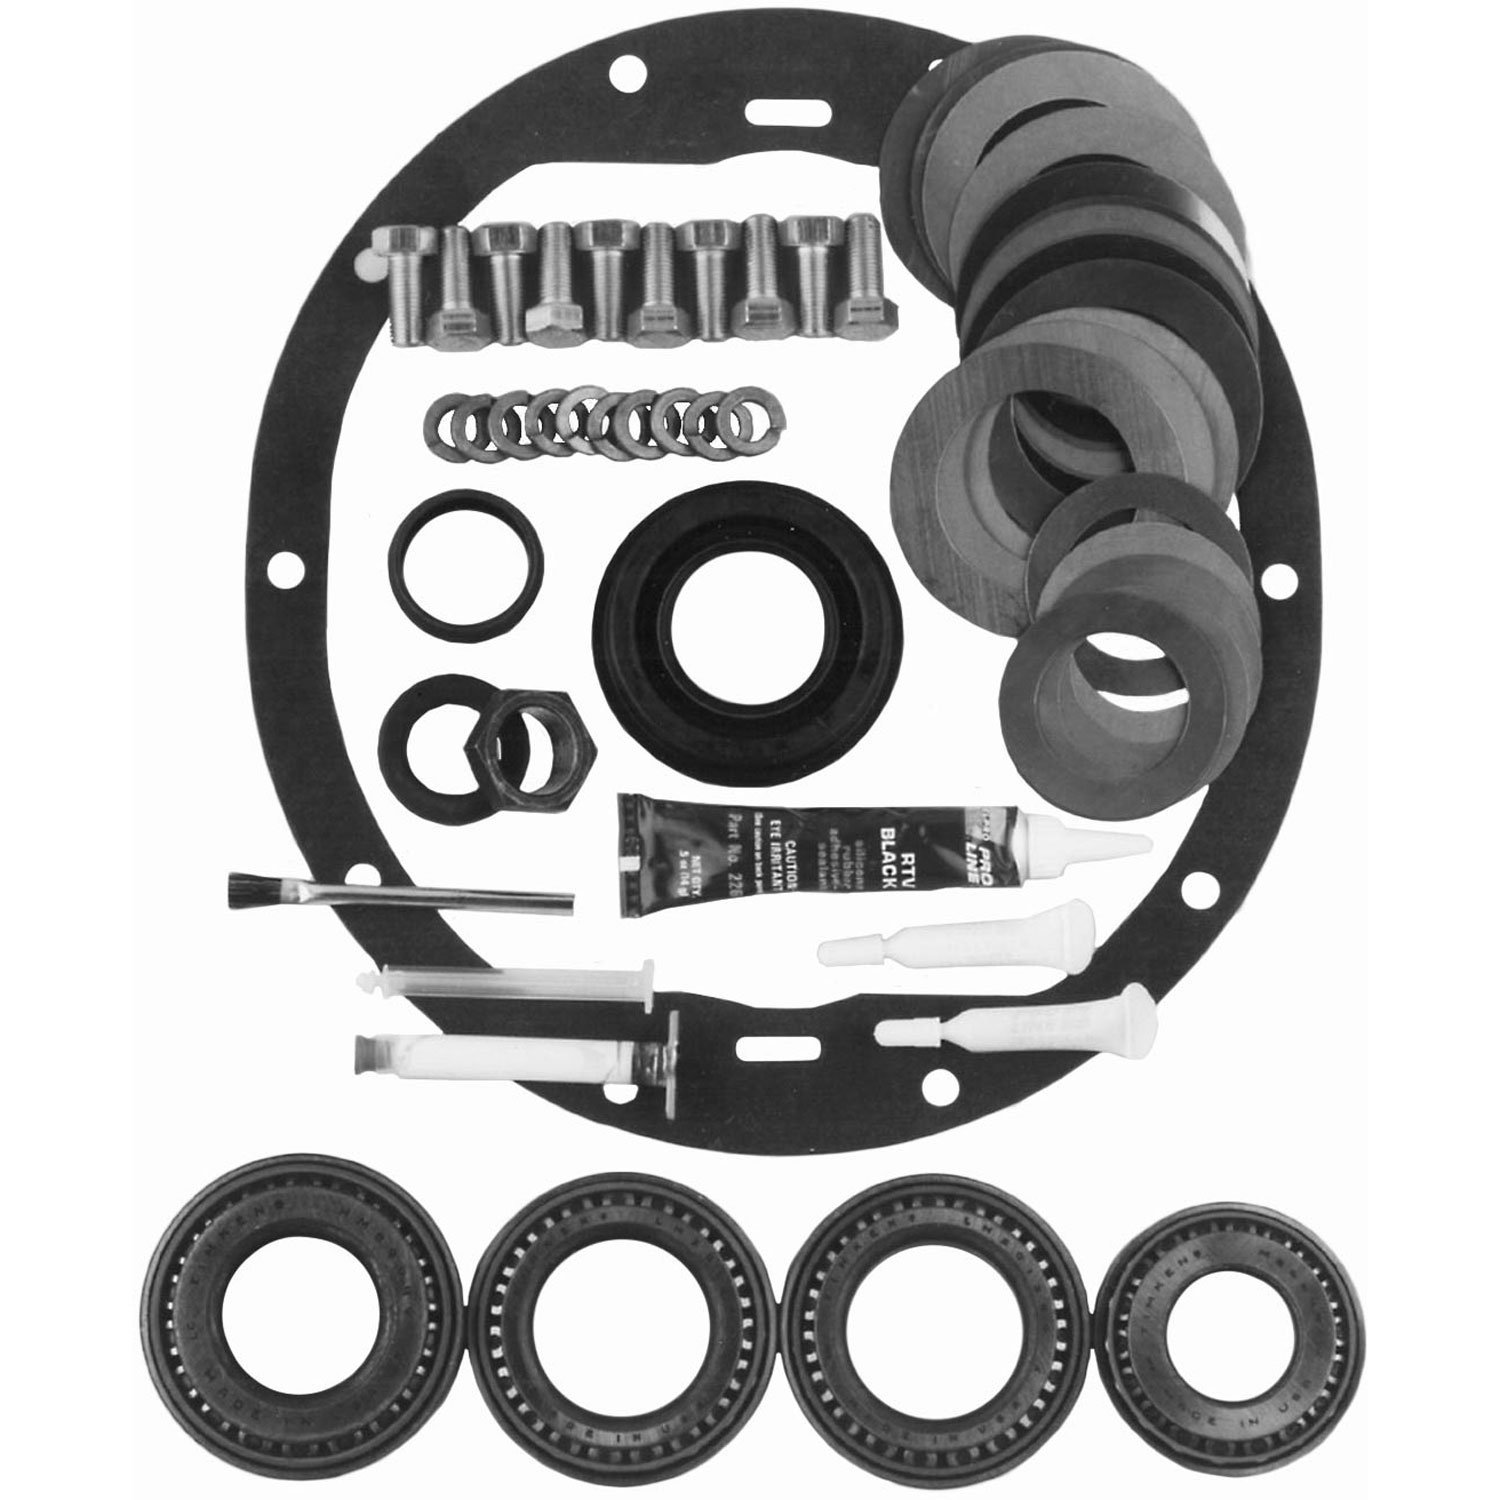 83-1019-M Richmond Install Kit